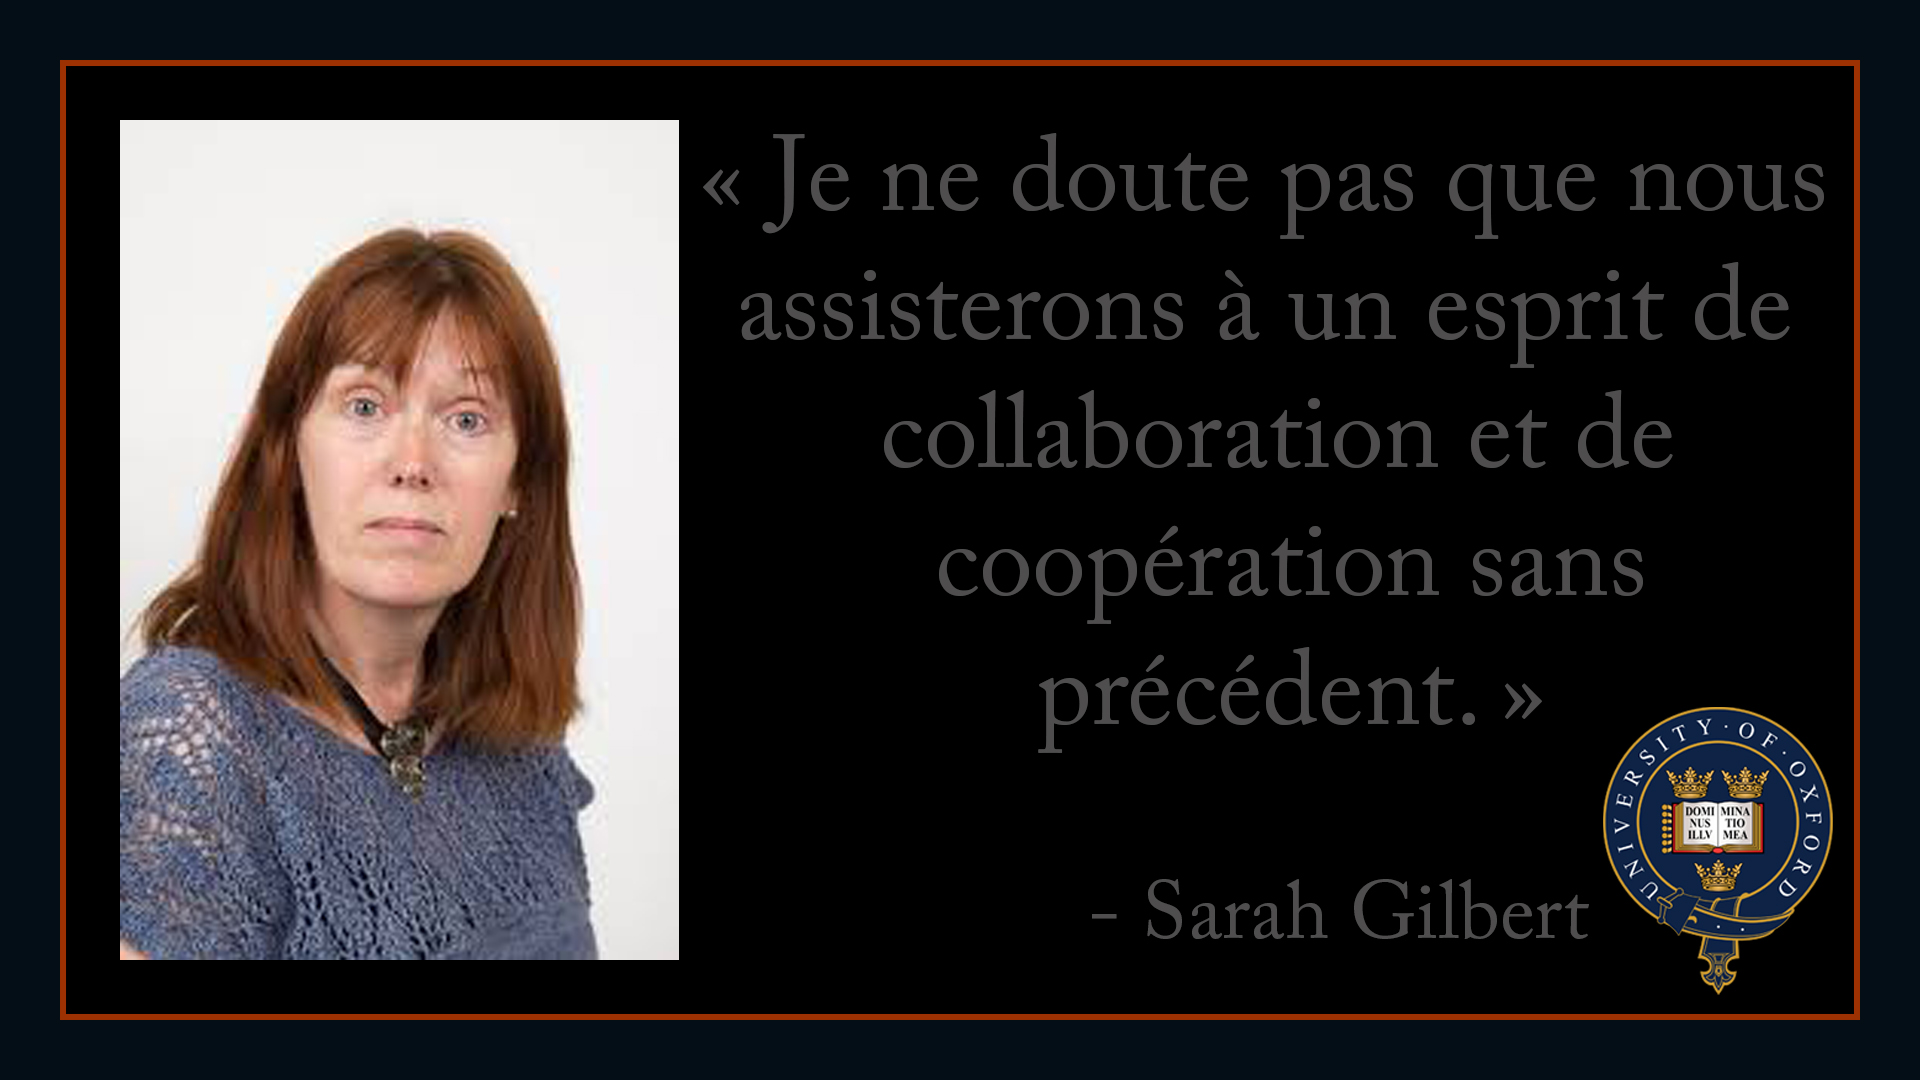 Collaboration and cooperation sarh gilbert d'purb dpurb site web